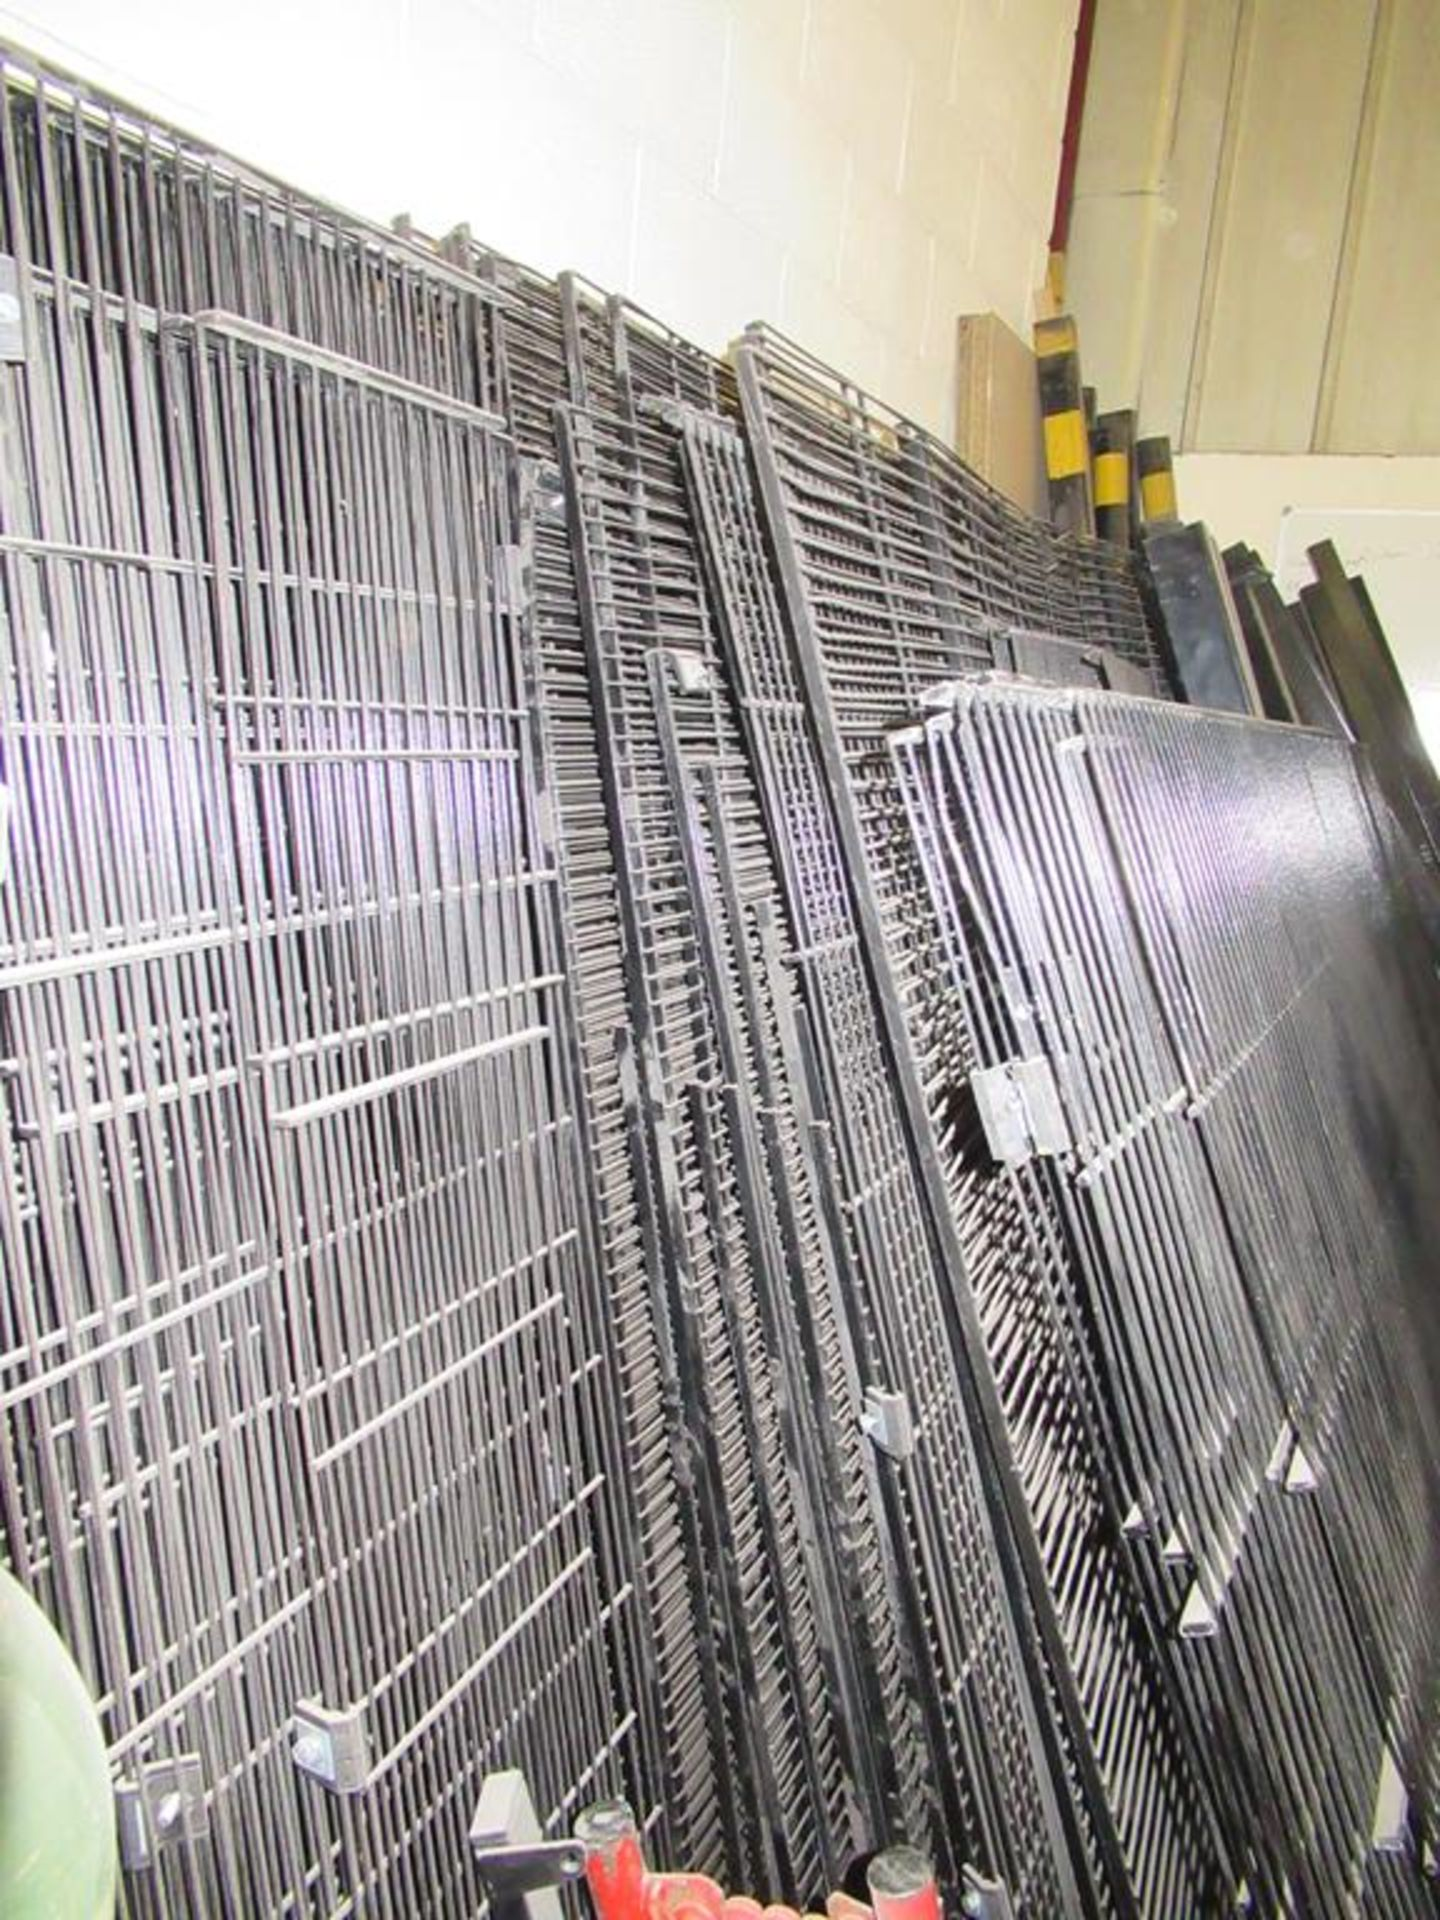 Lot 47 - Large qty of Black Mesh Steel Fencing and Posts, Clips